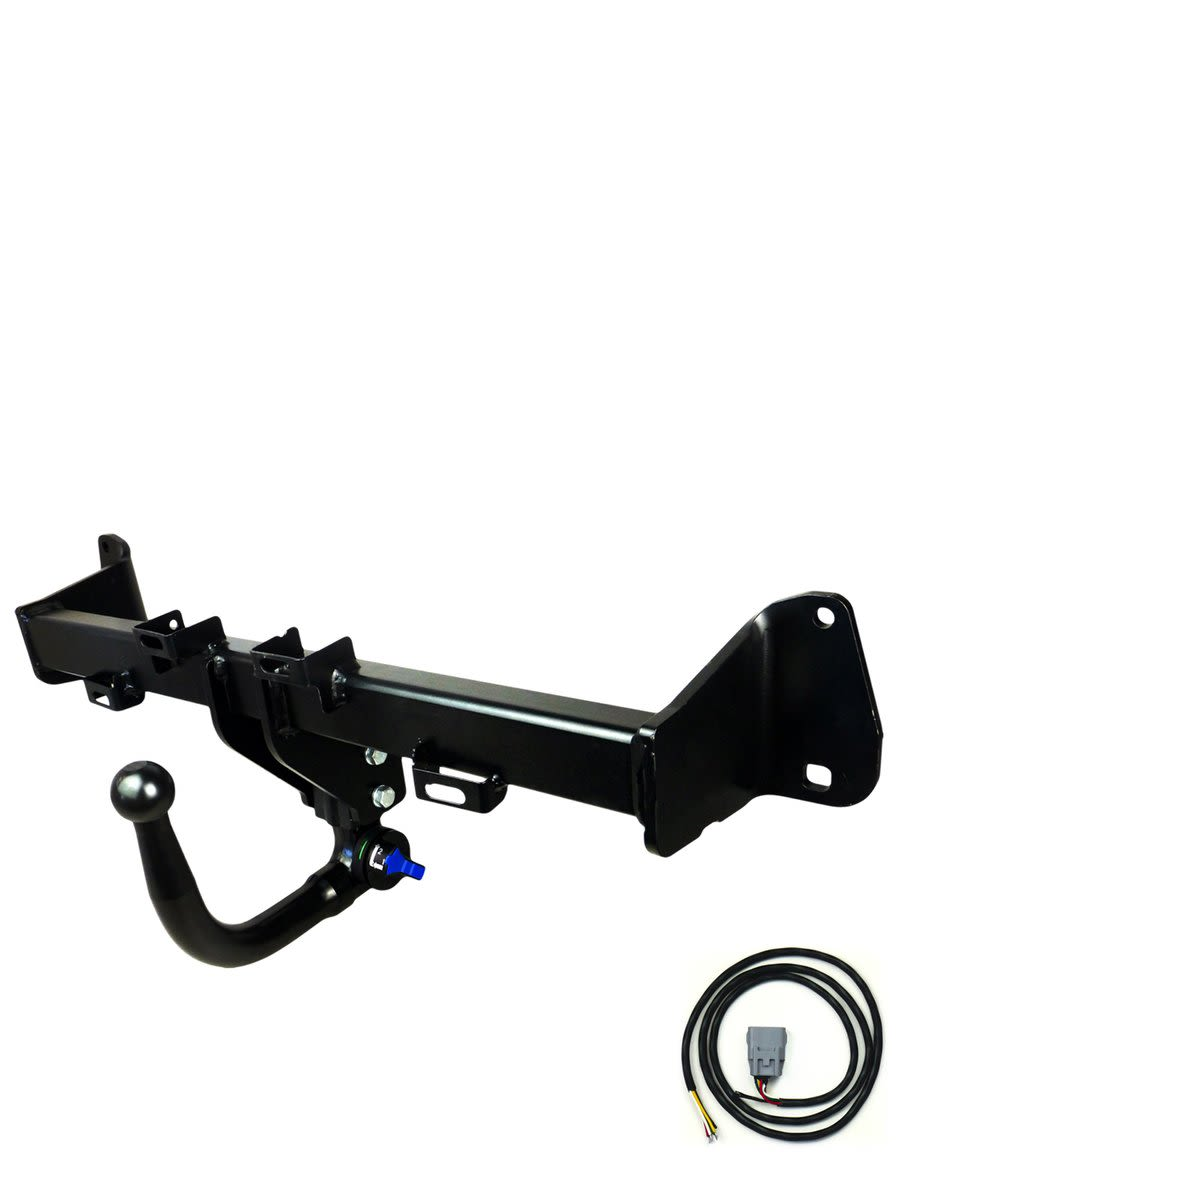 TAG Towbars European Style Tongue to suit MERCEDES-BENZ GLC-CLASS (09/2015 - on)